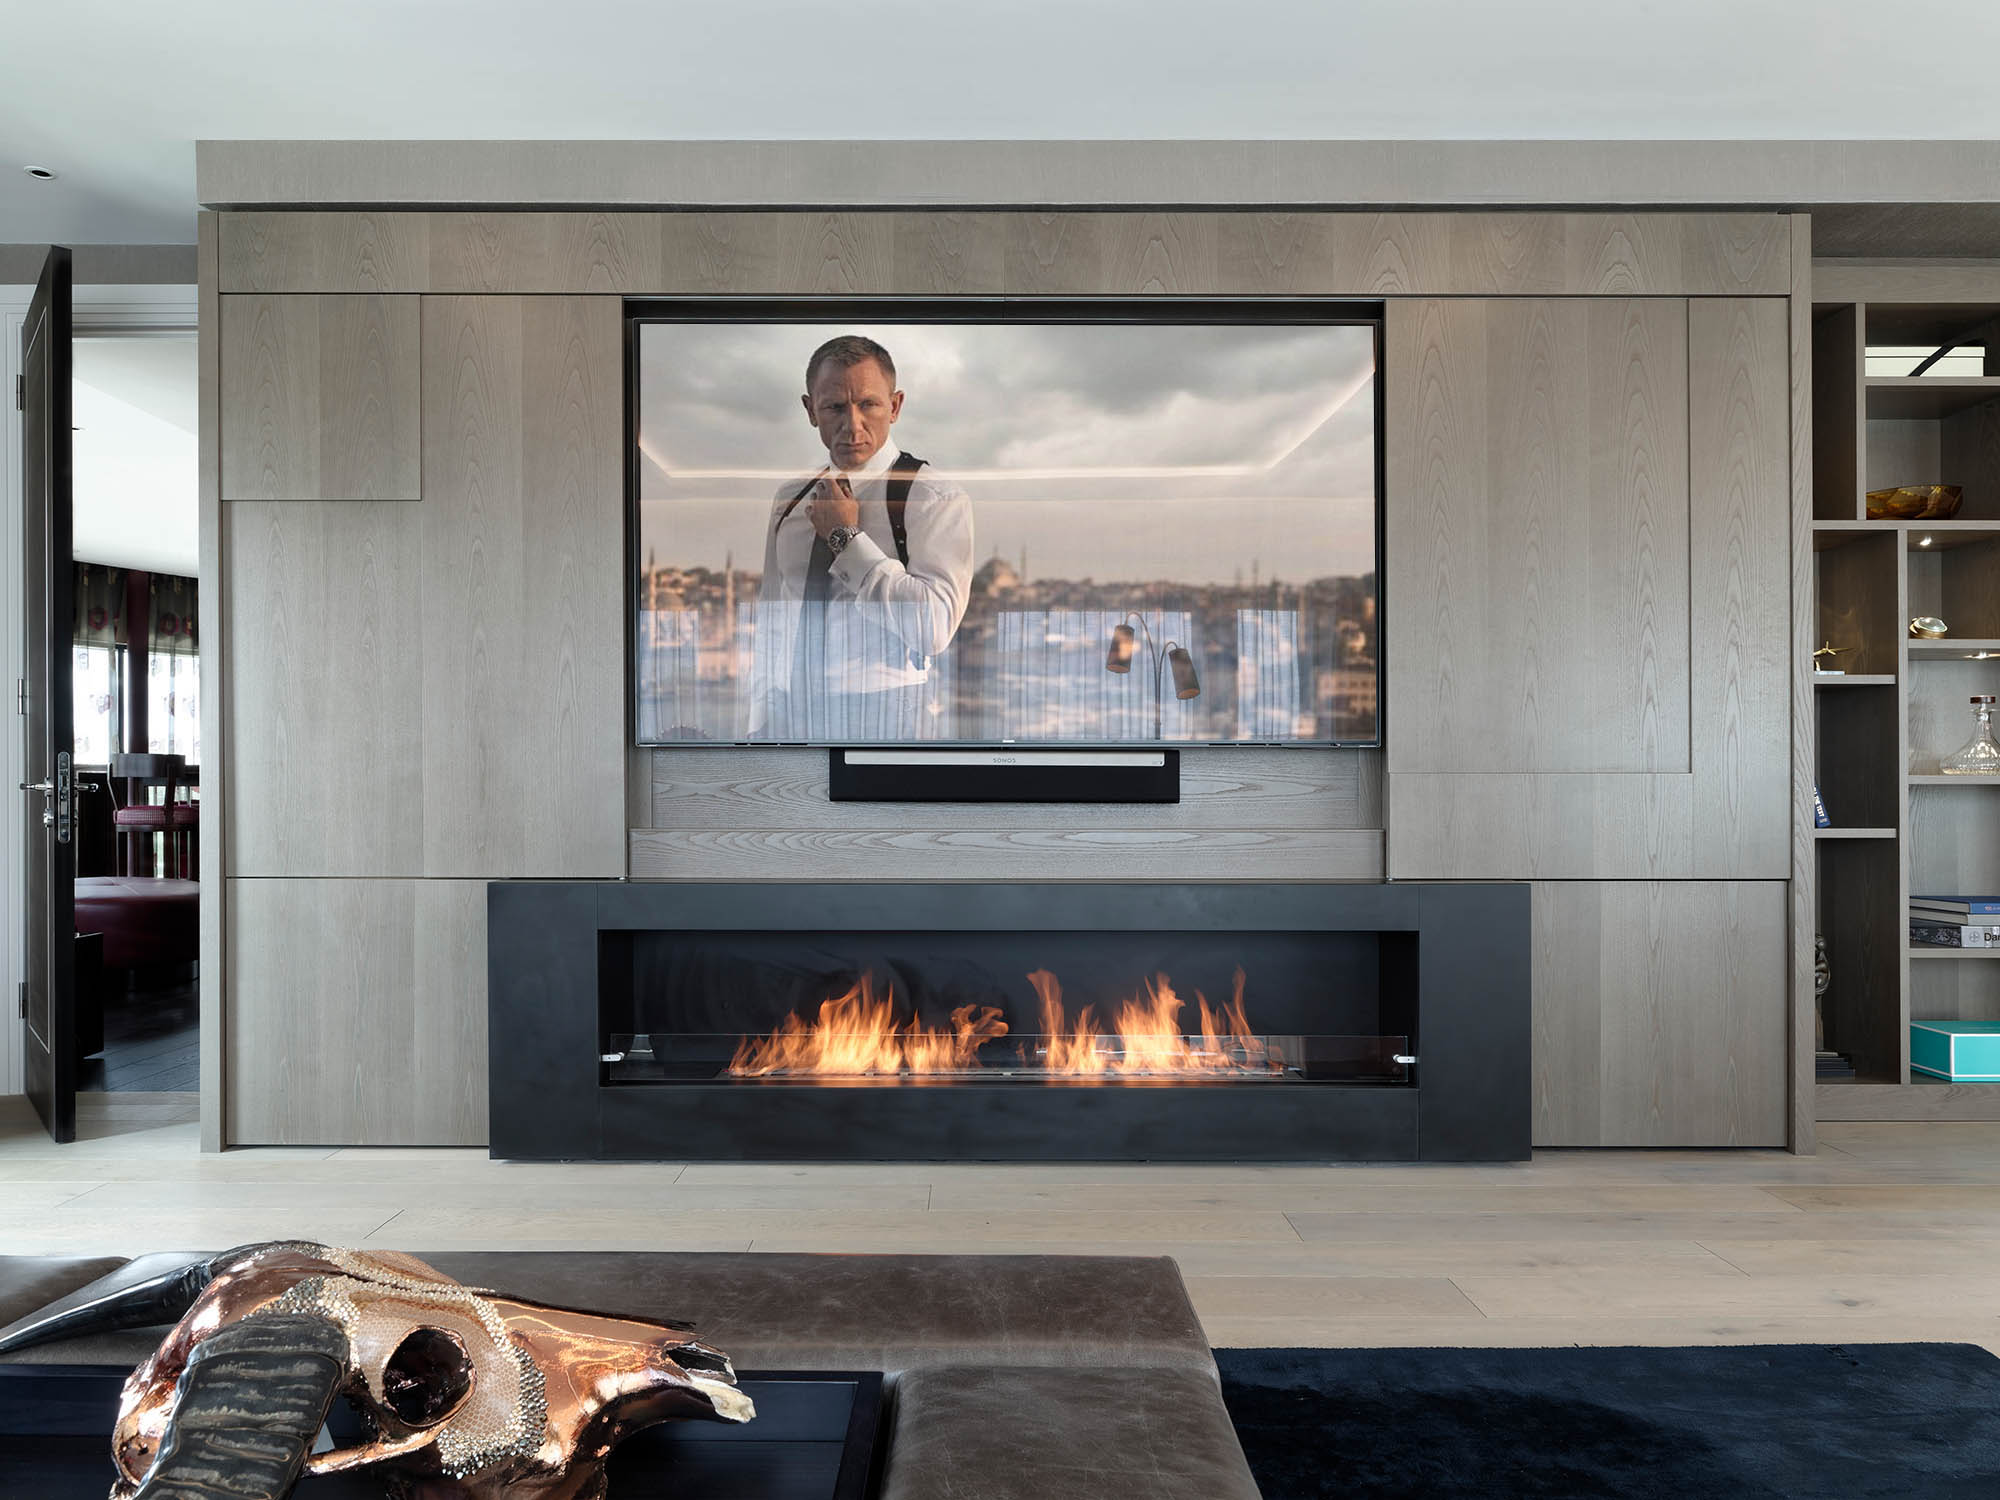 Completed Lounge area for Luxury Penthouse with letterbox fireplace and media wall doors open displaying widescreen television showing James Bond.